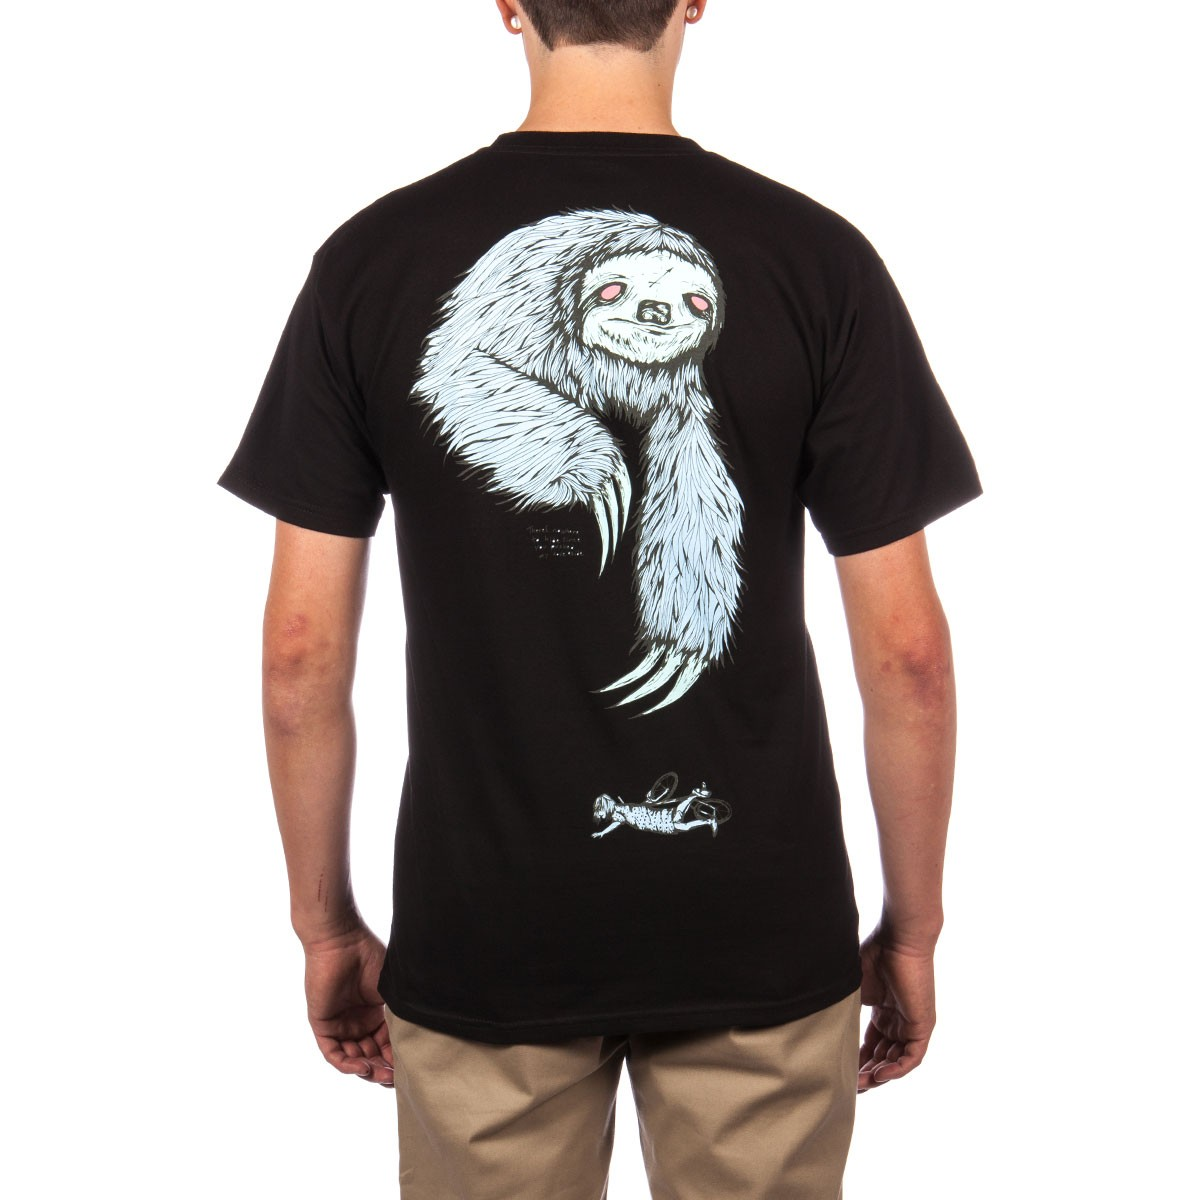 Welcome Sloth T-Shirt - Black